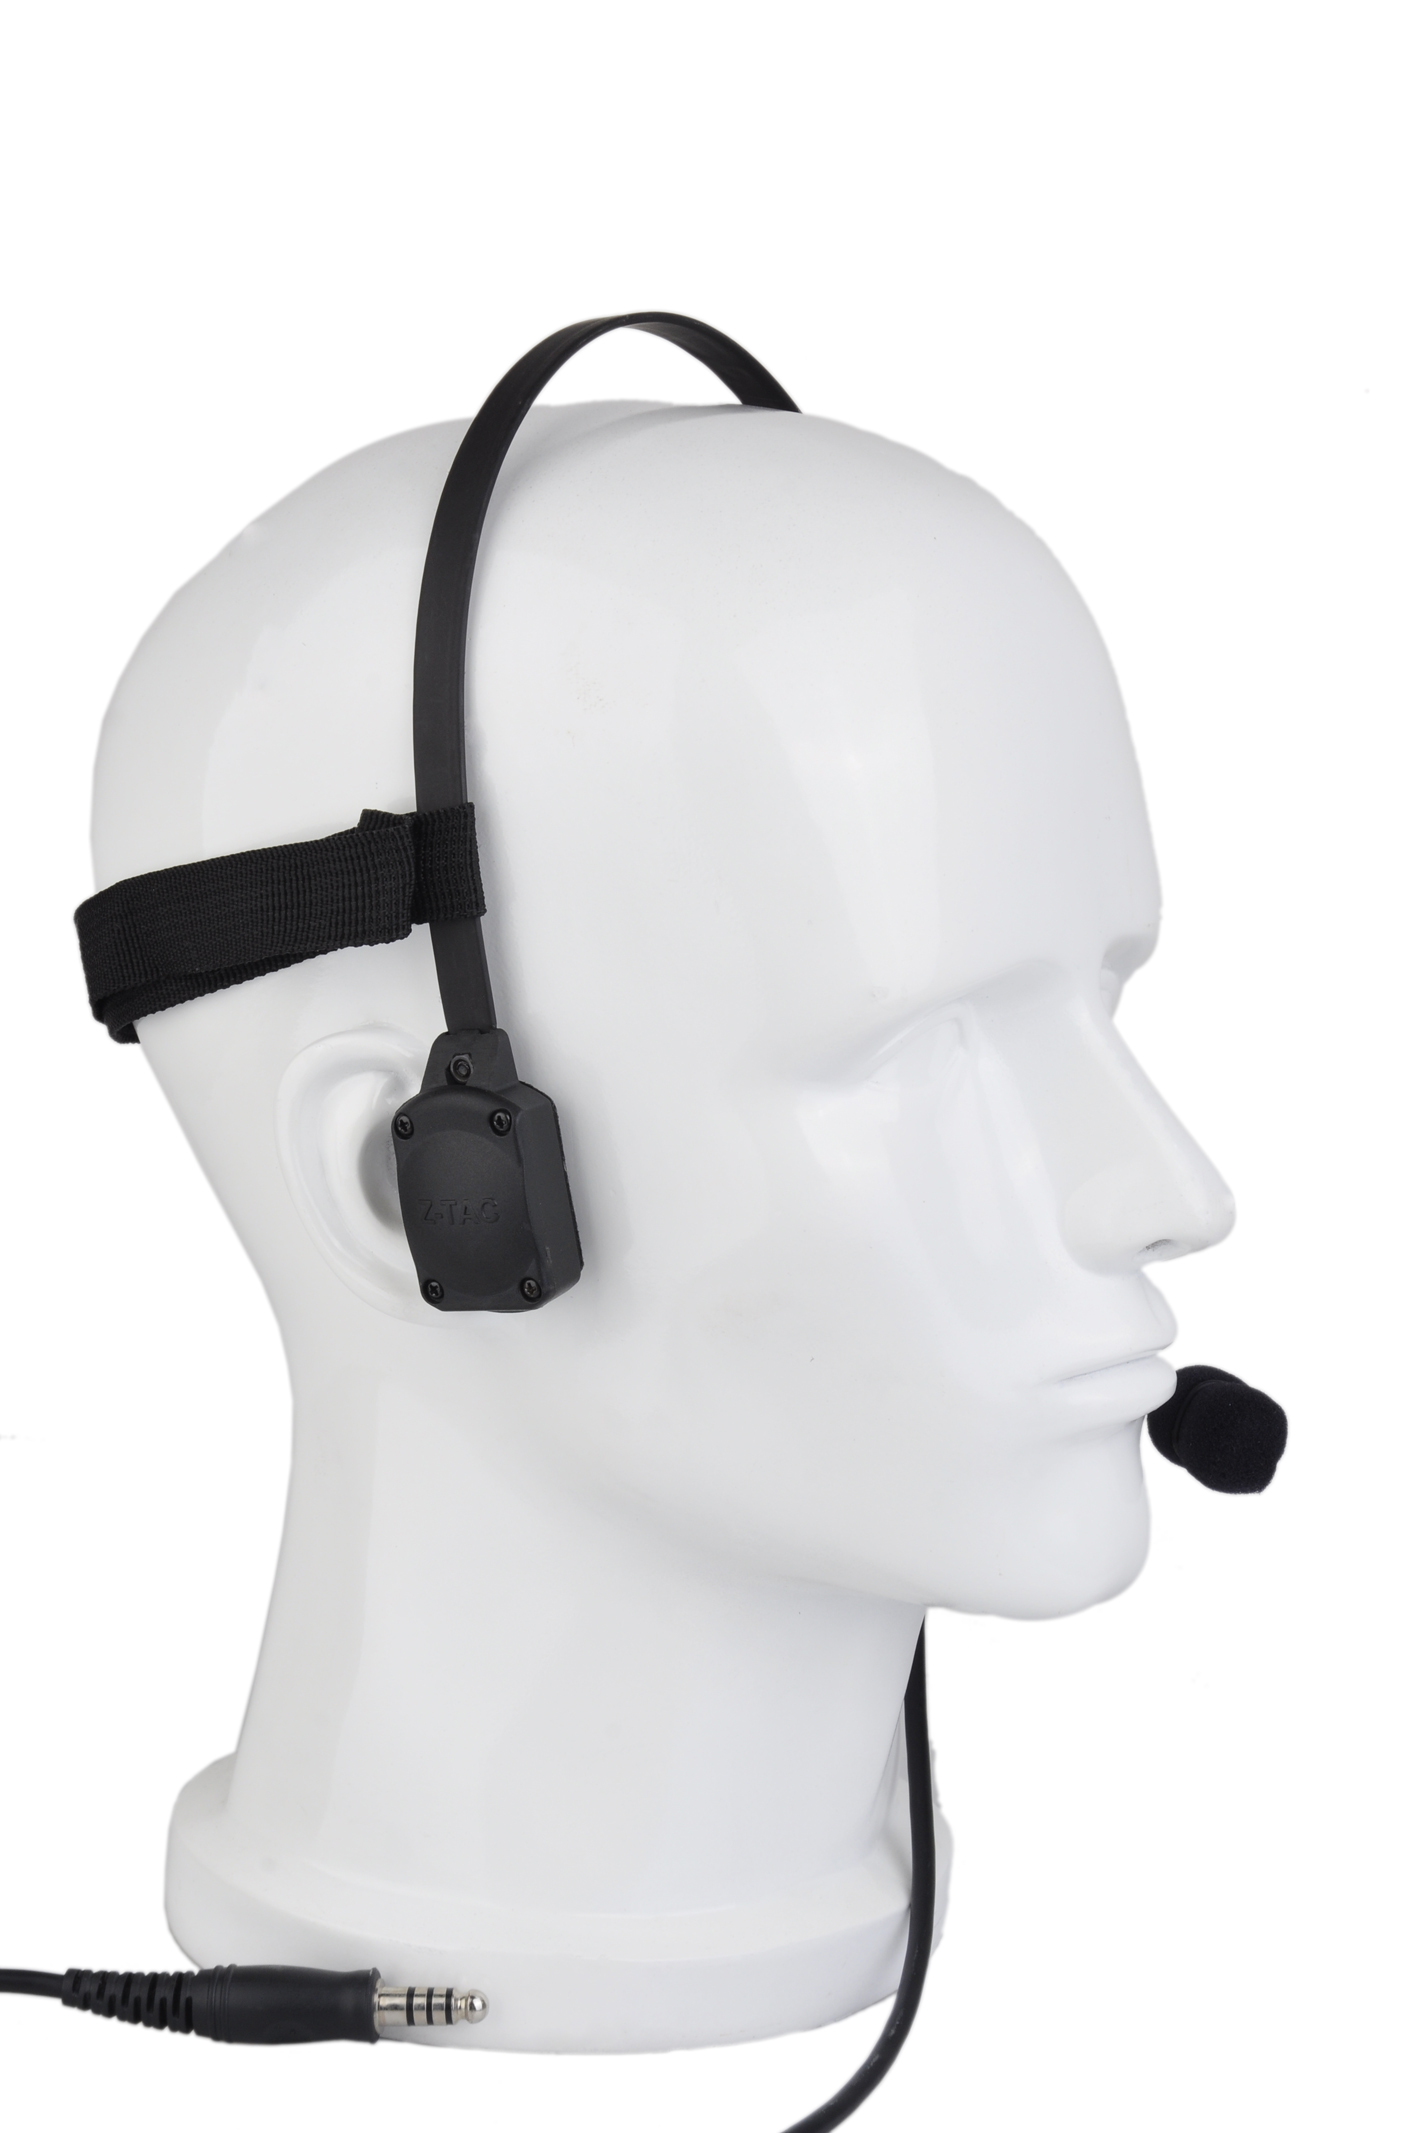 Z136 MH180-V Atlantic Signal Headset